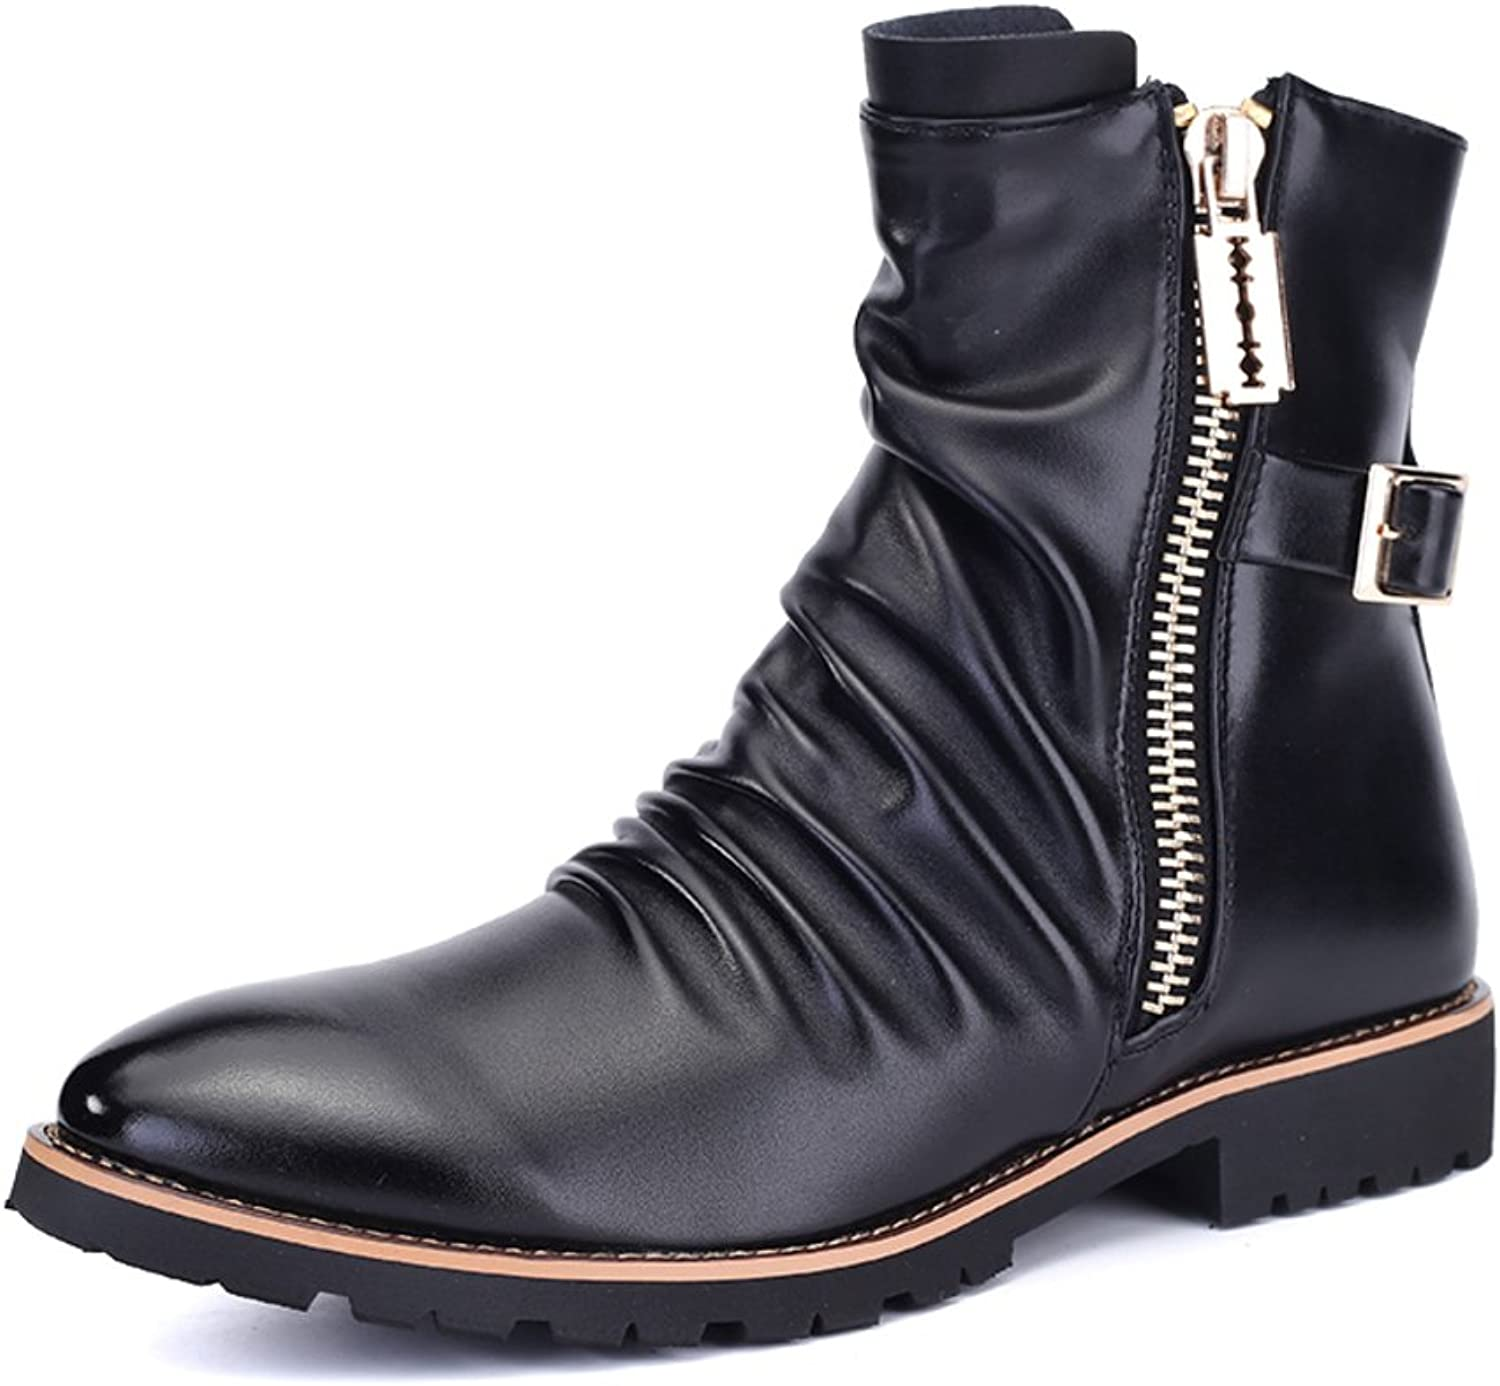 WLJSLLZYQ Men's Boots in Winter Martin Boots Fashion shoes Men's Short Boots Leather Boot Cotton shoes Motorcycle Boots